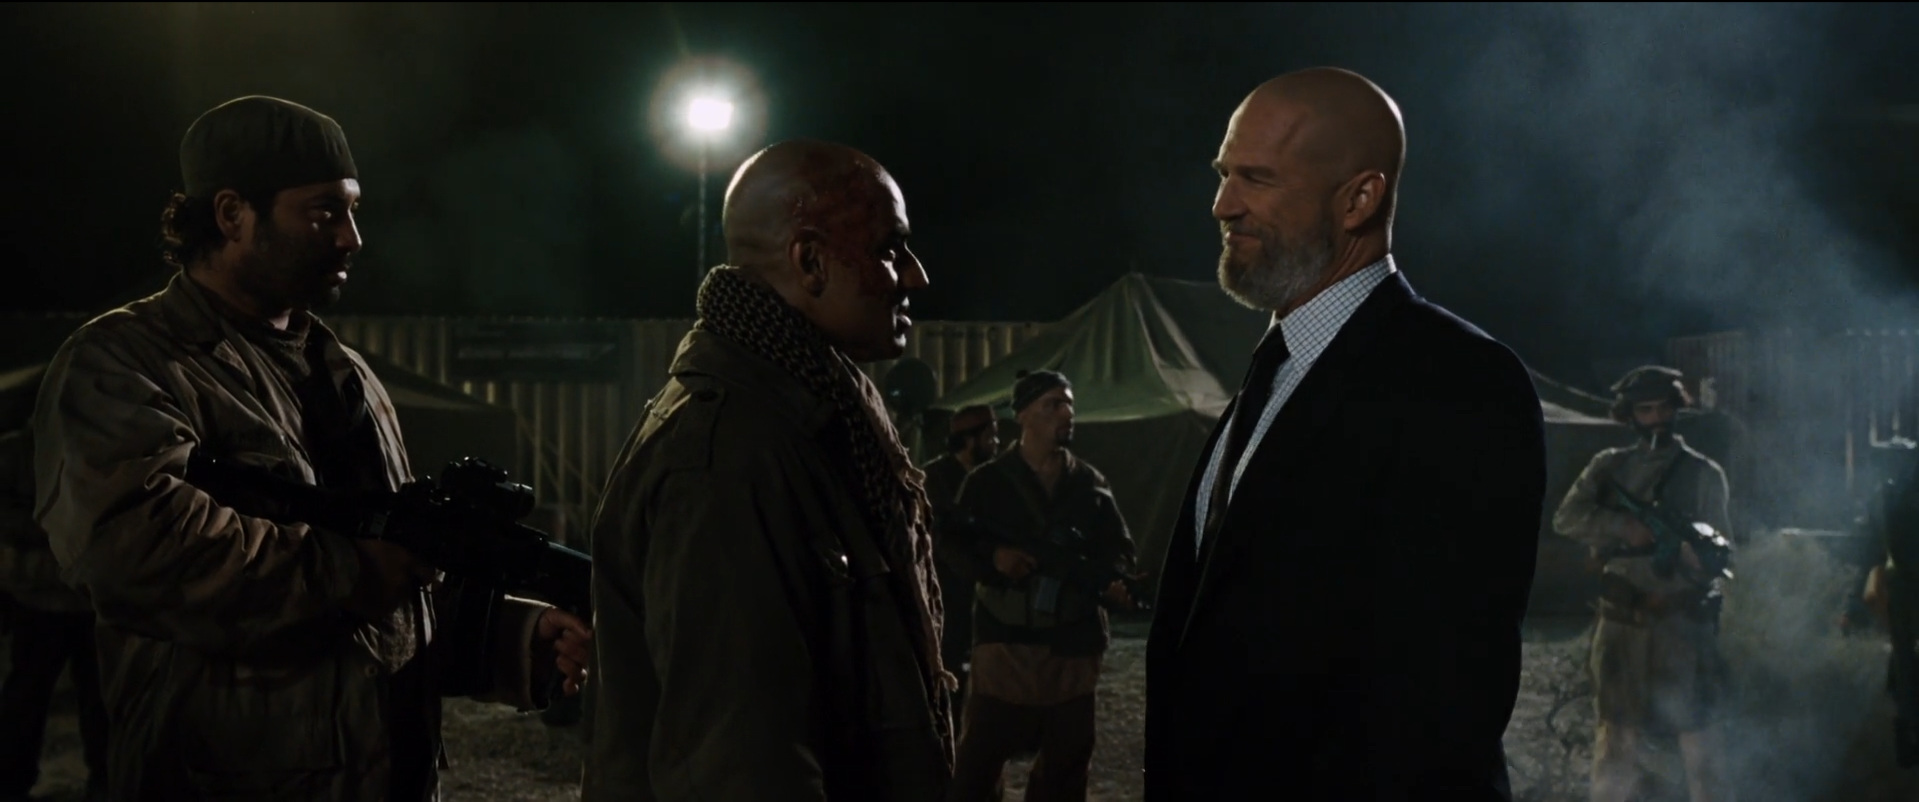 Iron Man  (2008): Obadiah Stane (right), the American as enemy